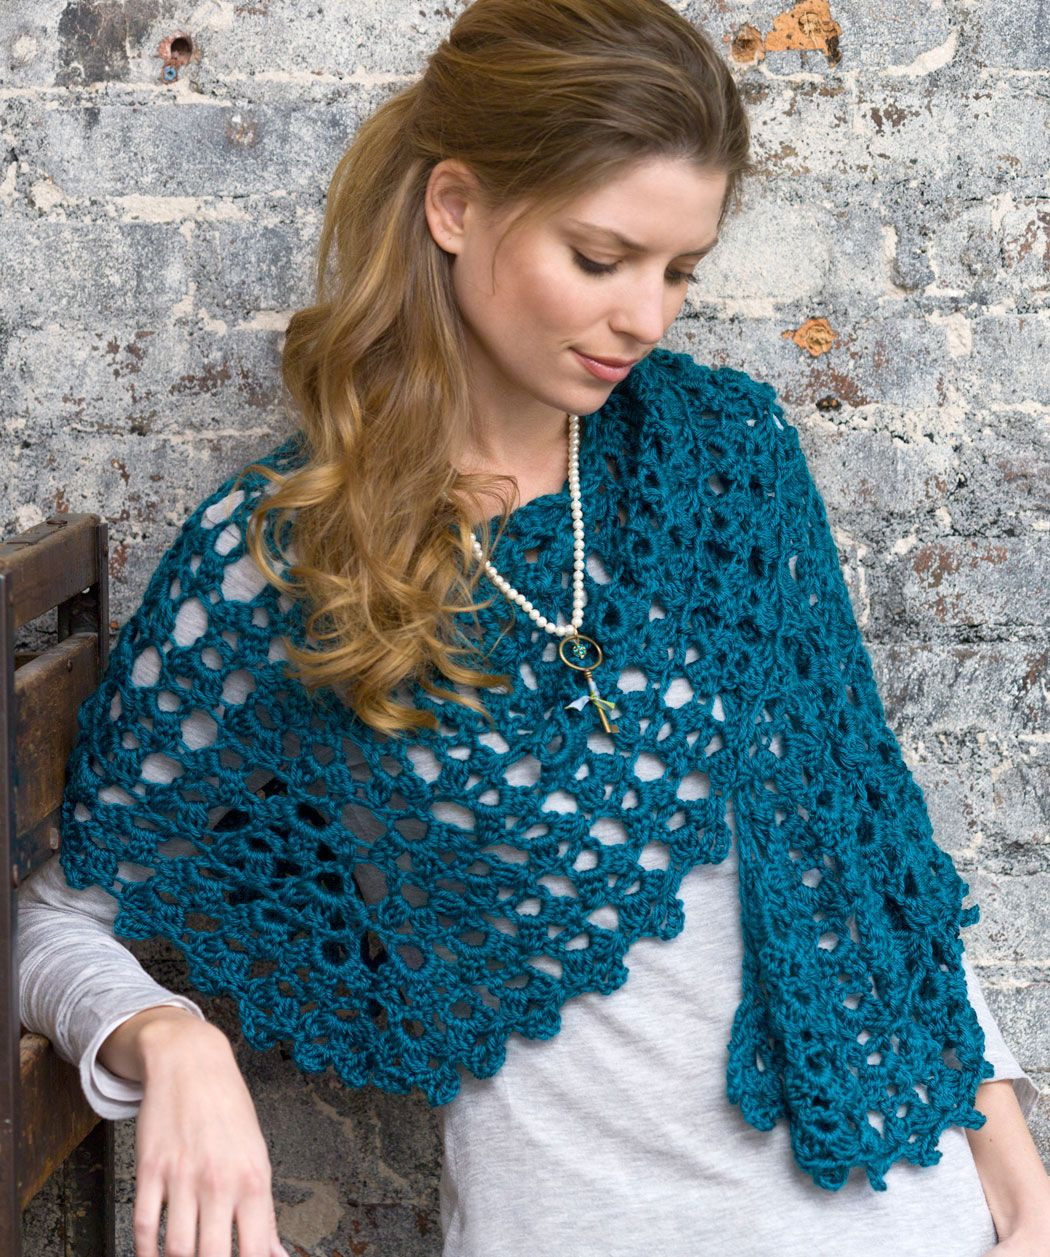 Red Heart Crochet Fresh Free Crochet Shawl Wrap Patterns On Pinterest Of Contemporary 50 Models Red Heart Crochet